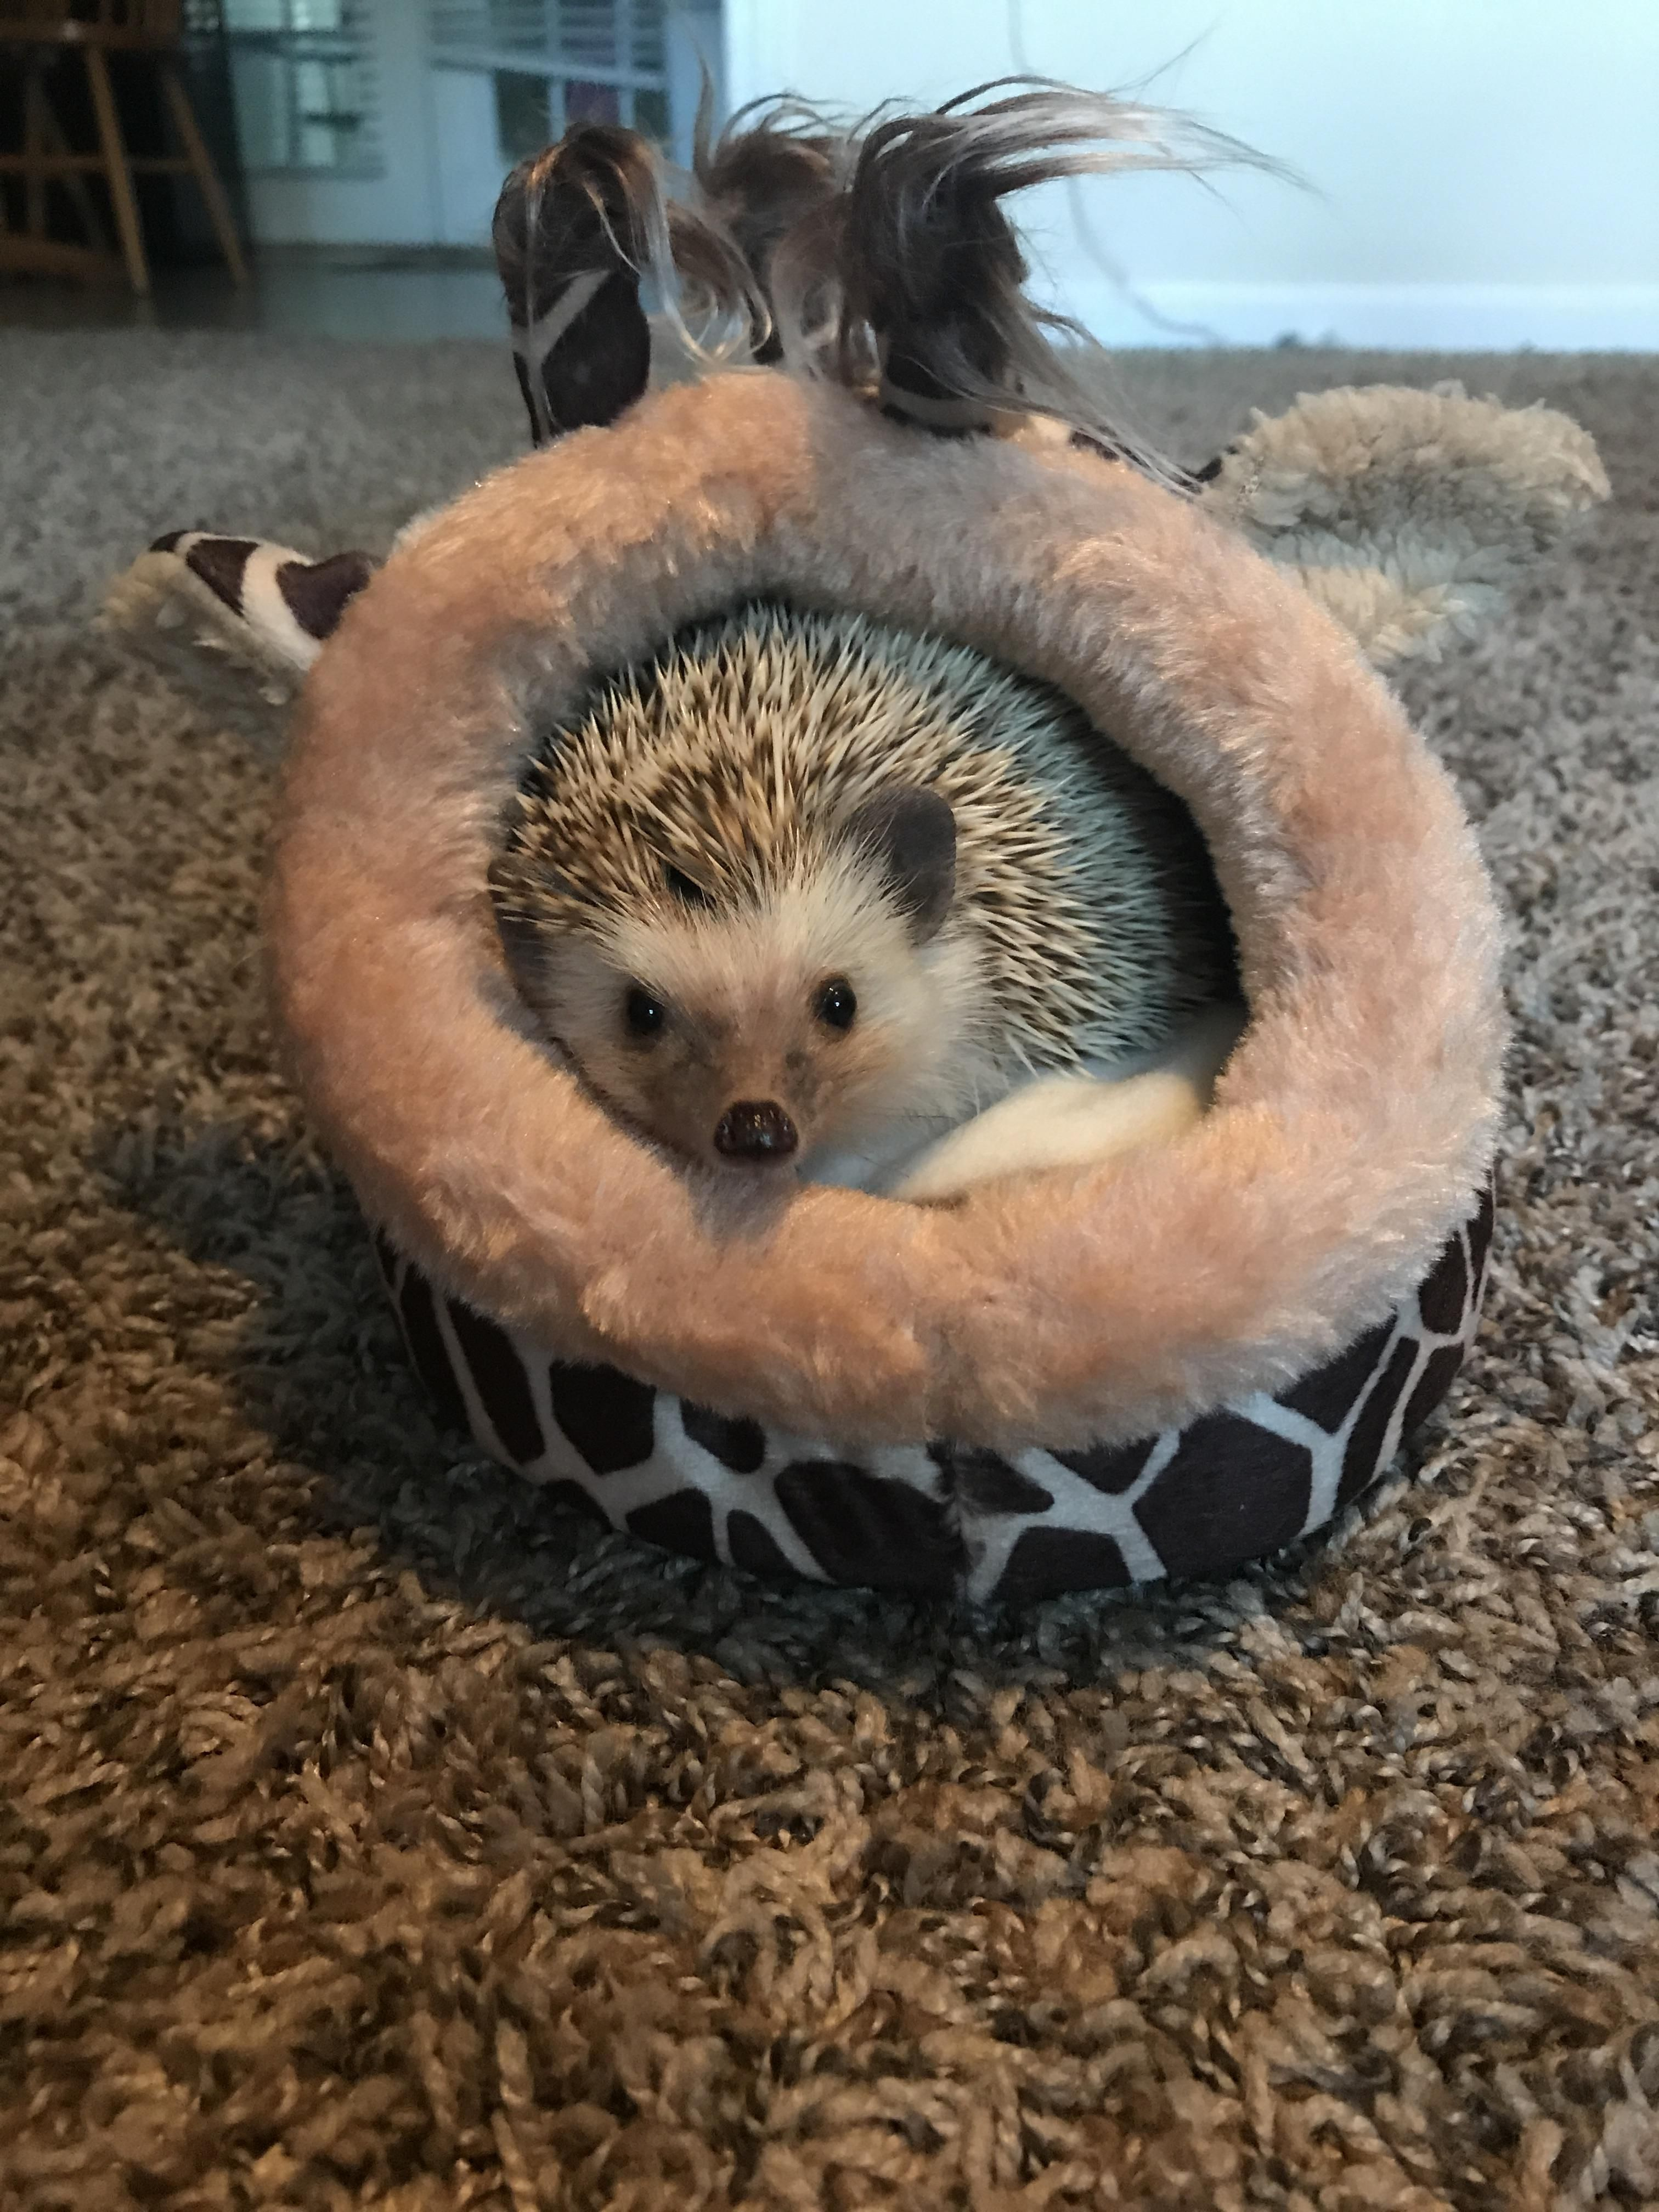 Bought My Hedgehog A Giraffe Bed With Images Giraffe Bedding